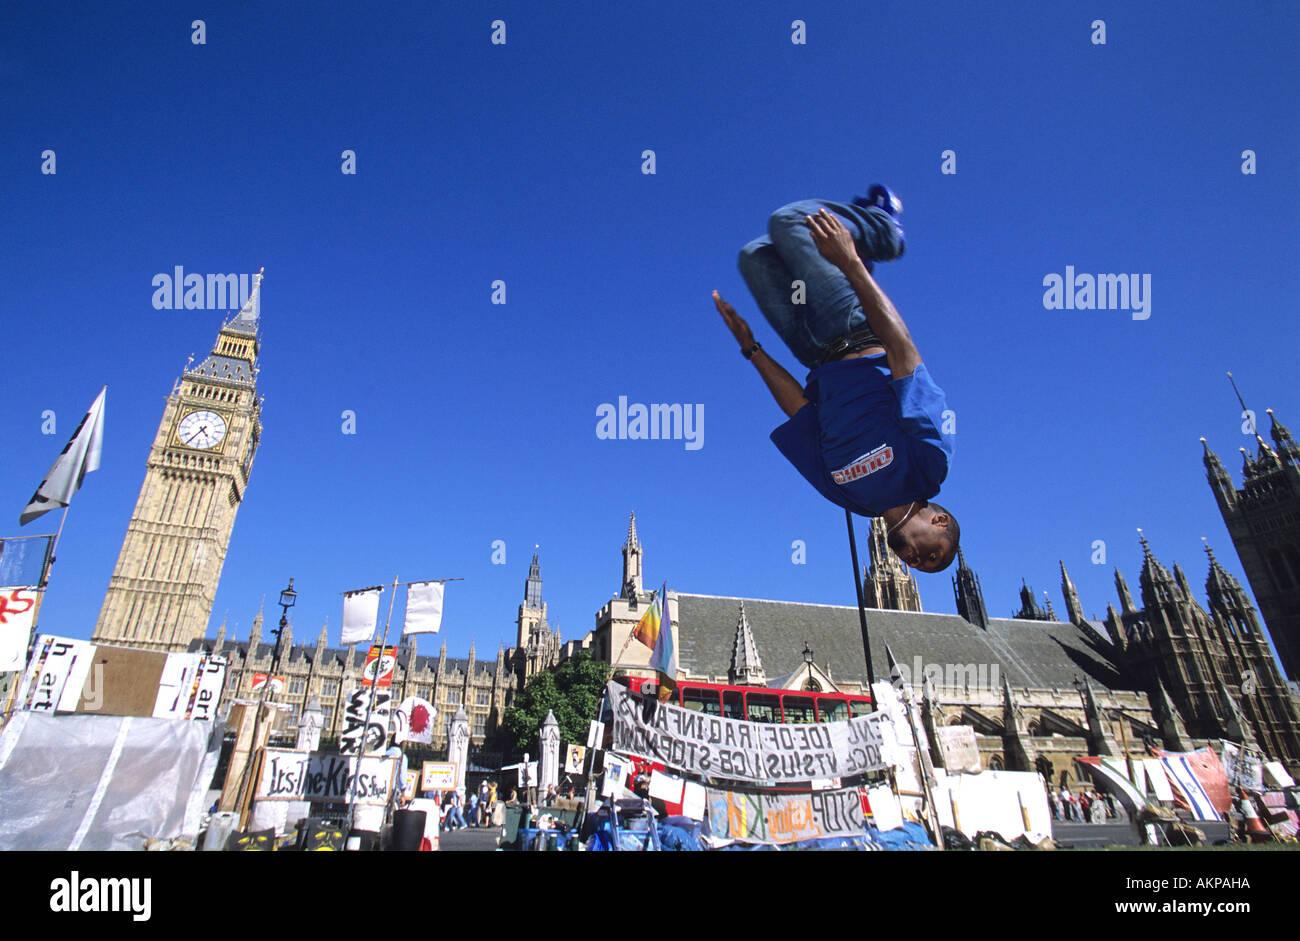 Le Parkour enthusiast back flipping outside the Houses of Parliament and Big Ben in London - Stock Image